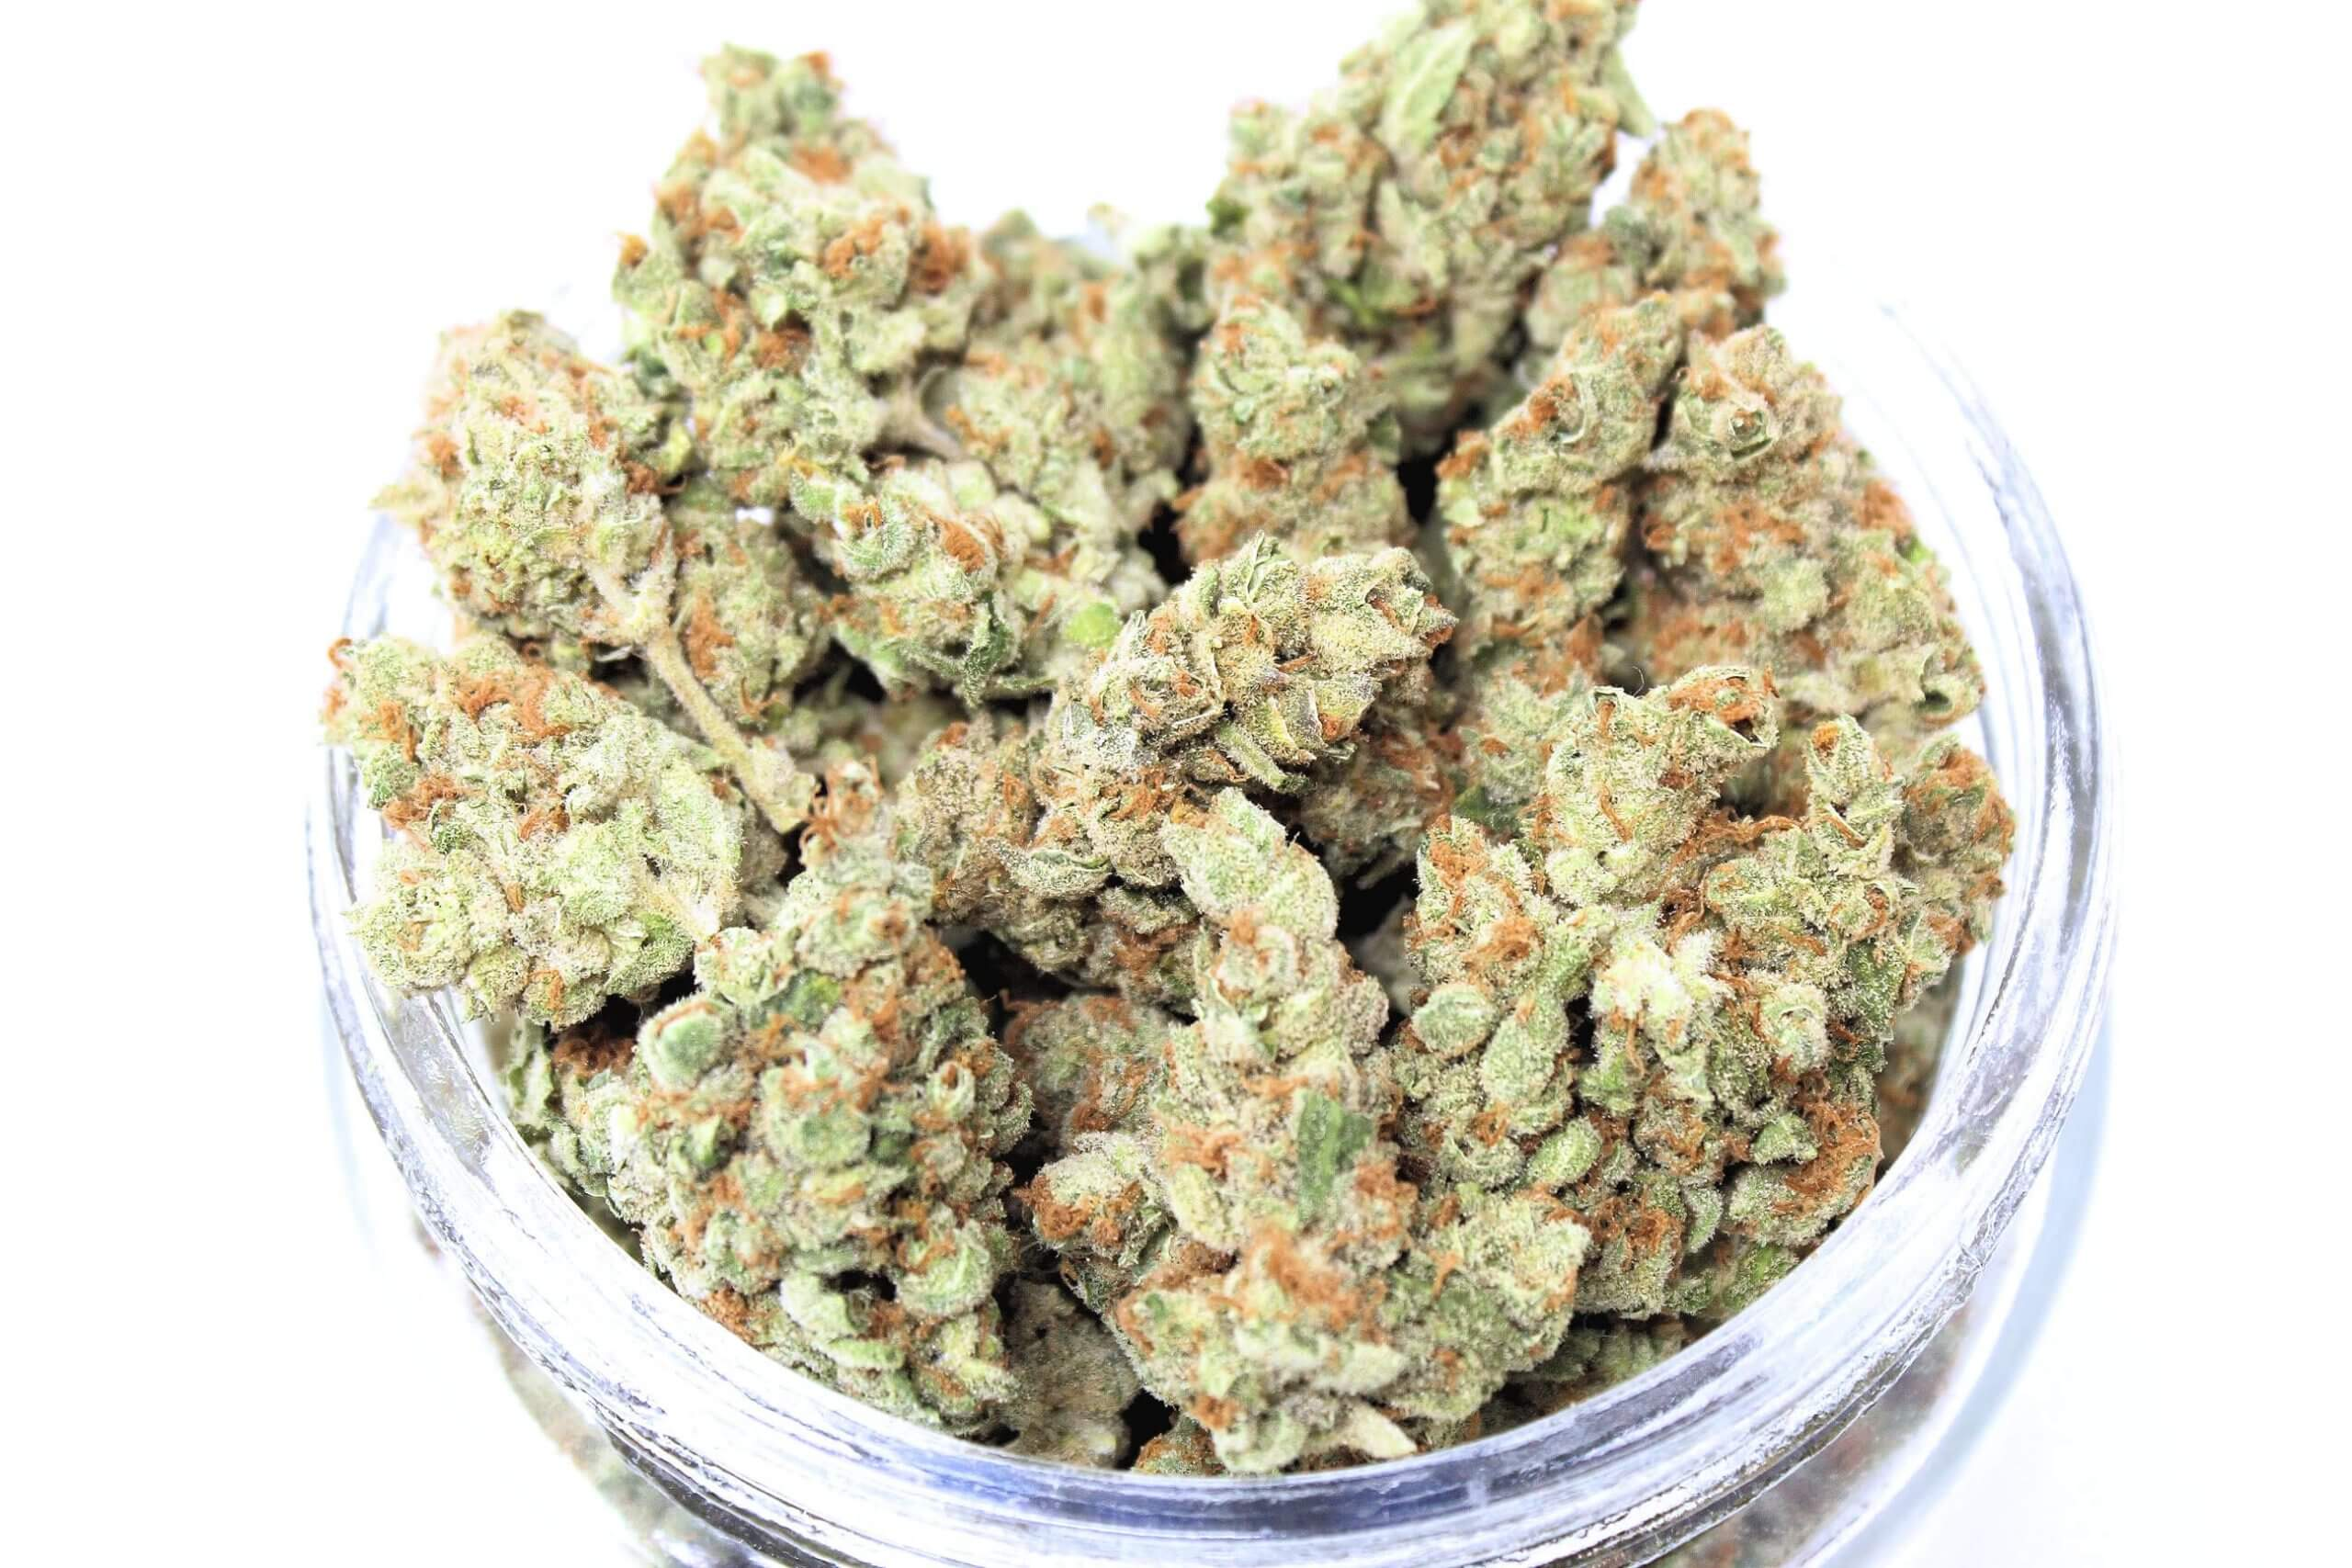 buying weed online canada